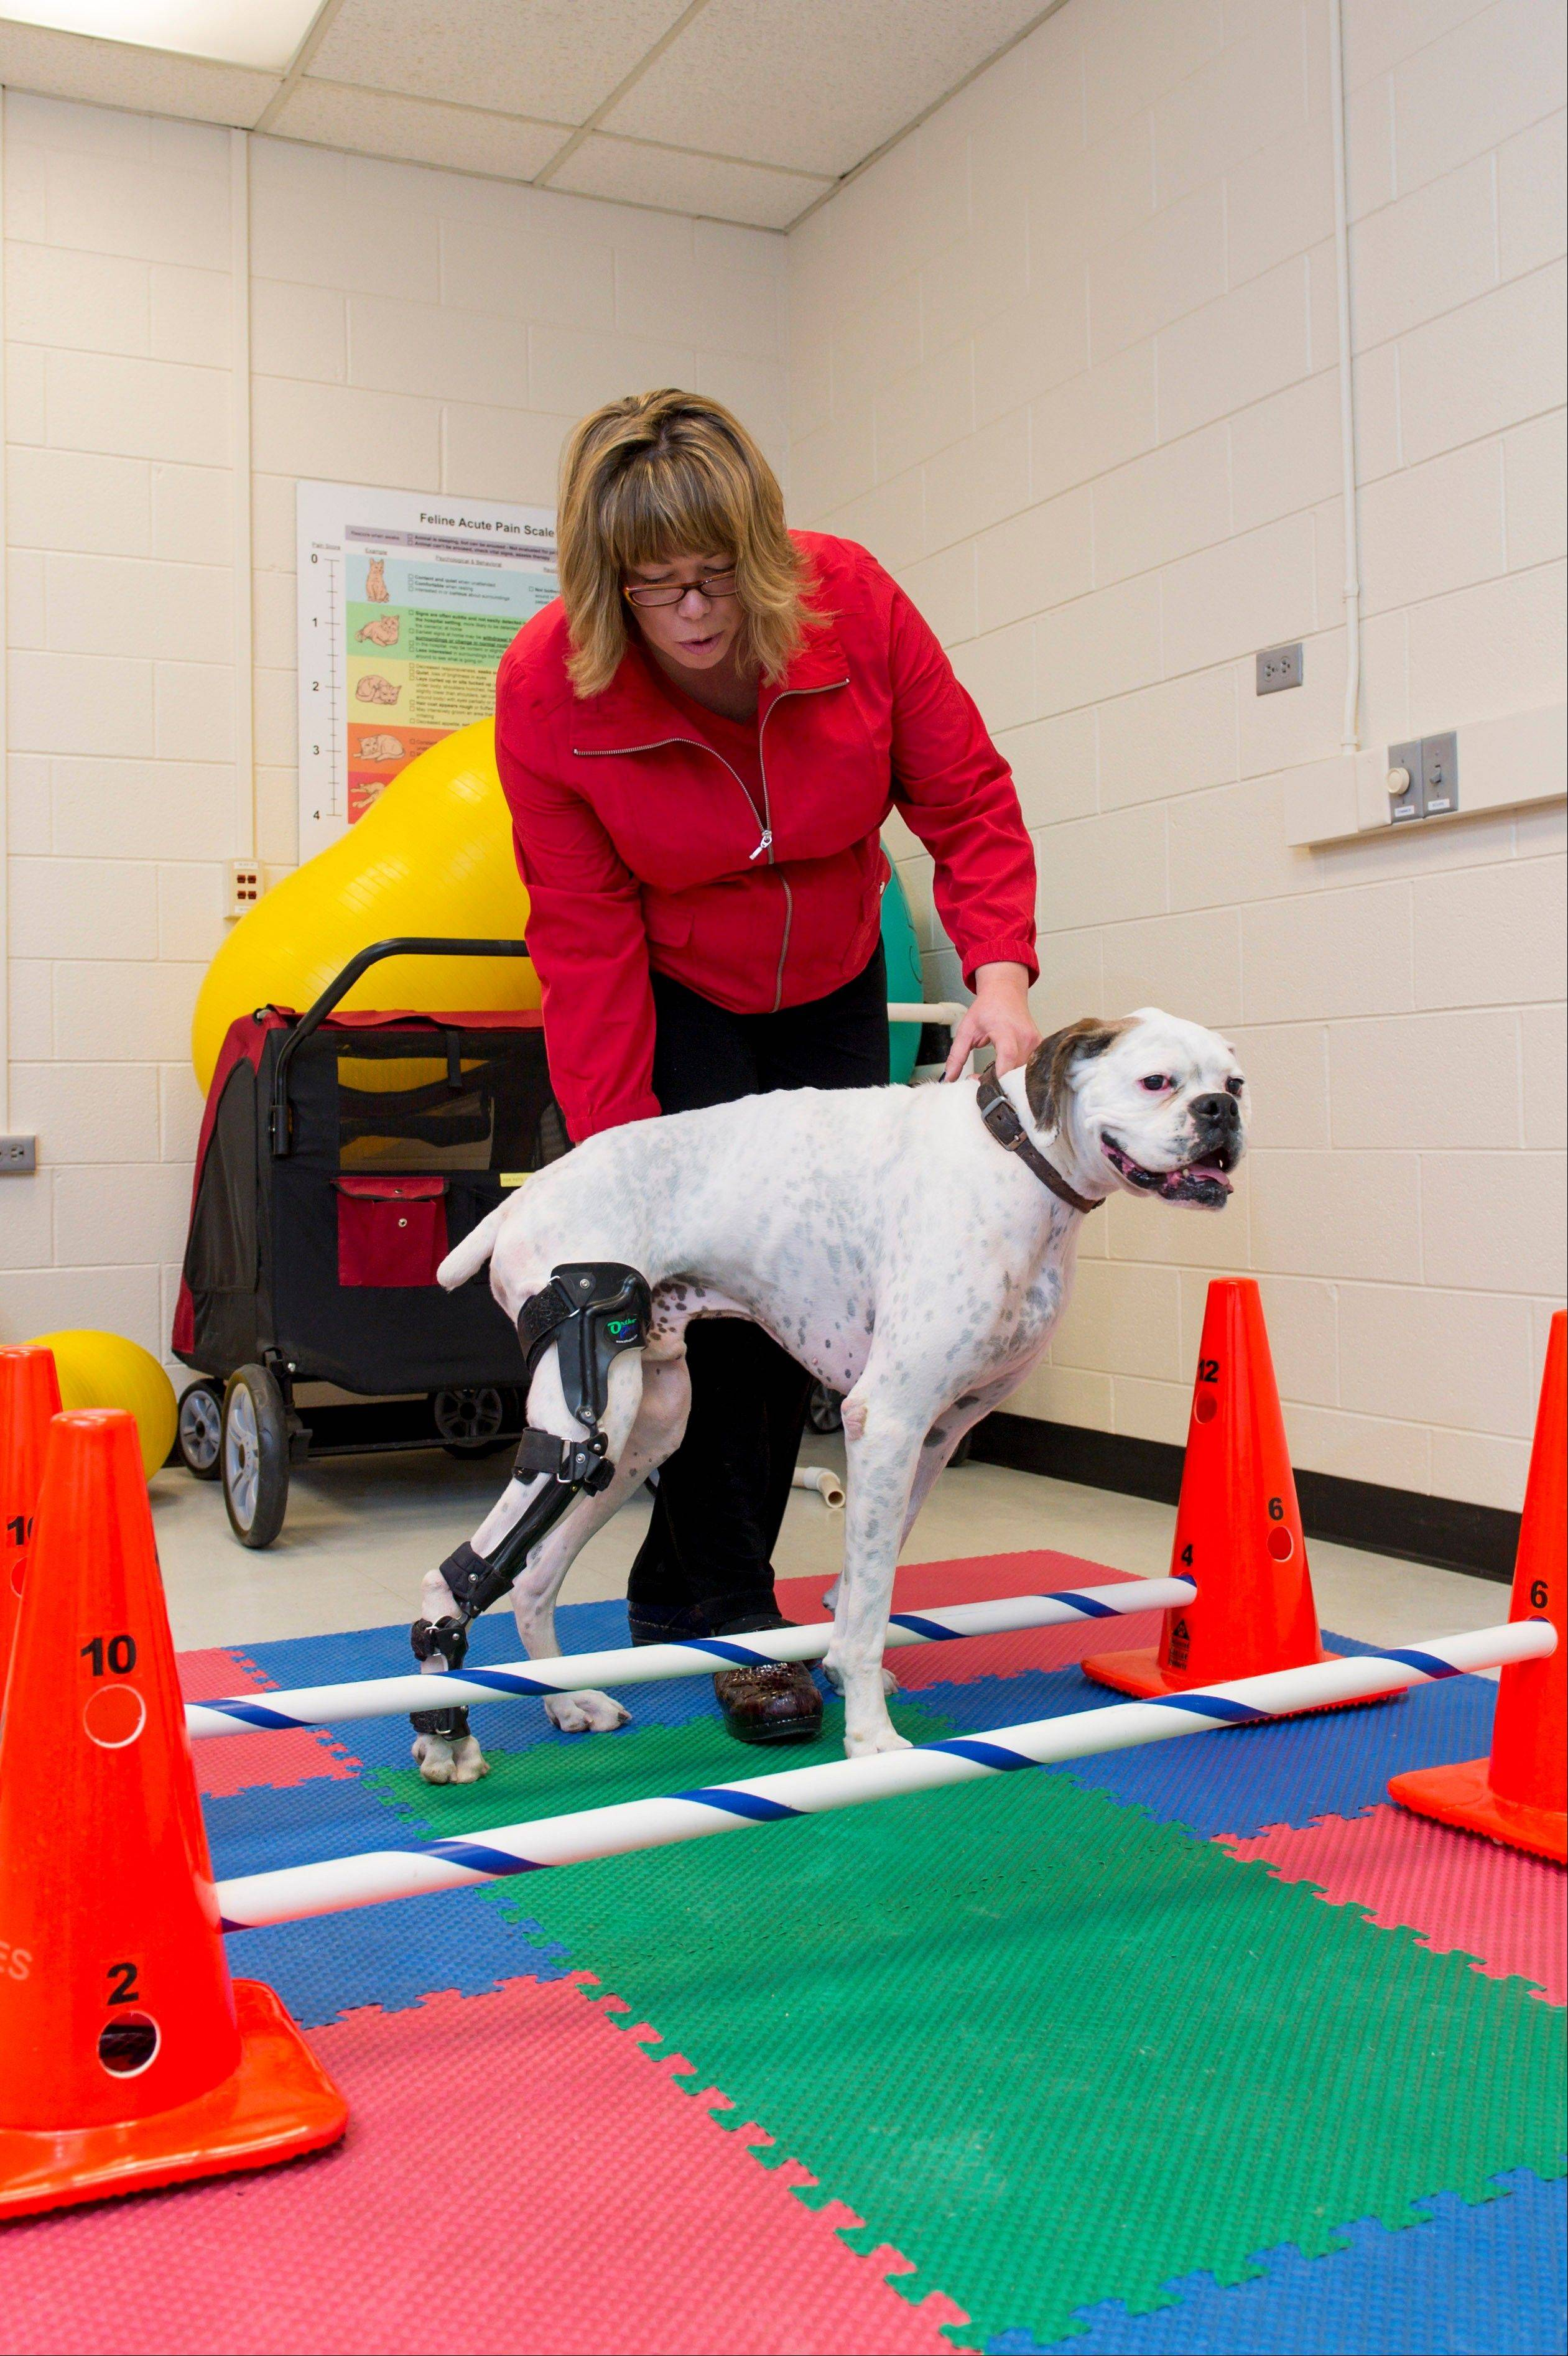 Rehabilitation therapist Sasha Foster assists patient Nate with Cavaletti exercises to strengthen his stifle (knee) due to a torn cranial cruciate ligament (known as an ACL in humans) at the Small Animal Orthopaedics at the College of Veterinary Medicine and Biomedical Sciences, in Fort Collins, Colo.